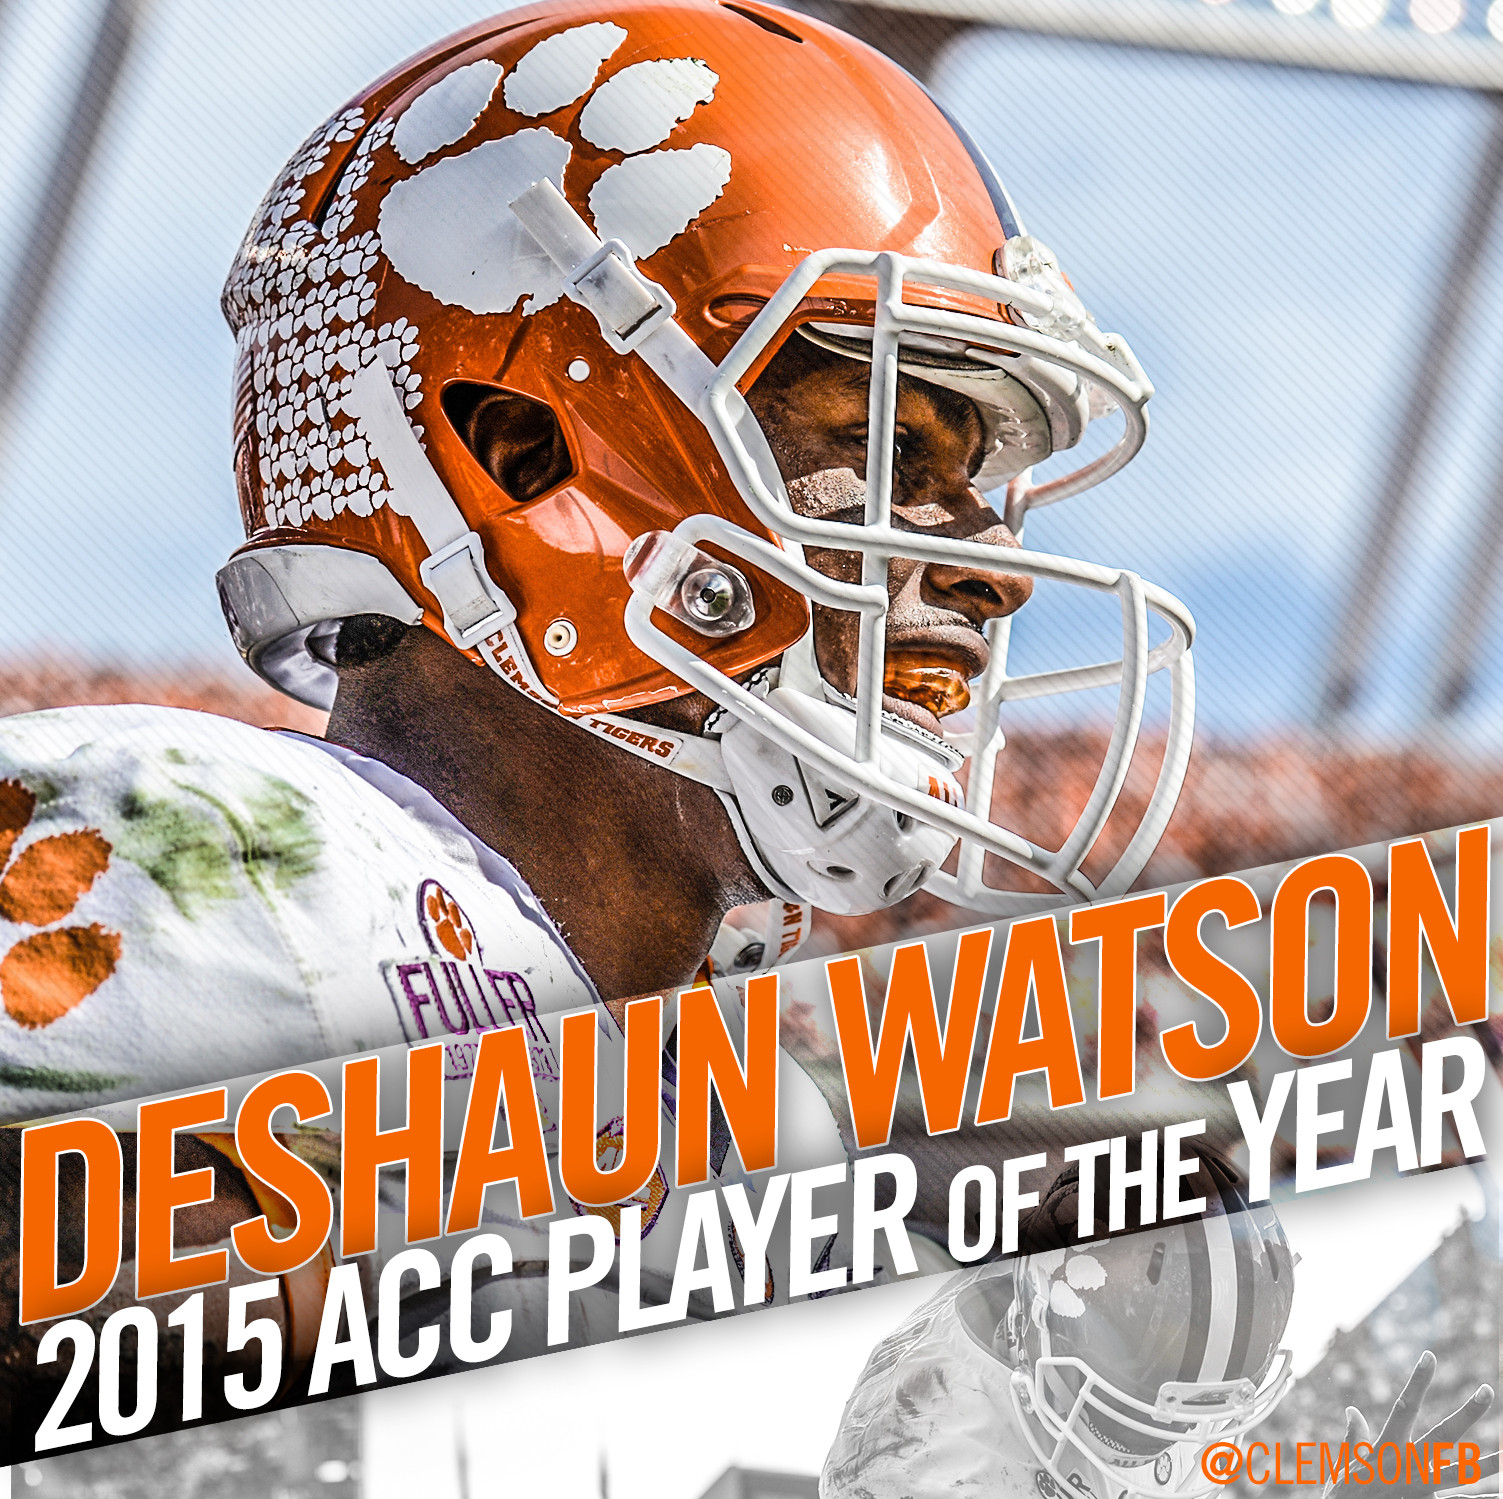 Watson Named ACC Player of the Year